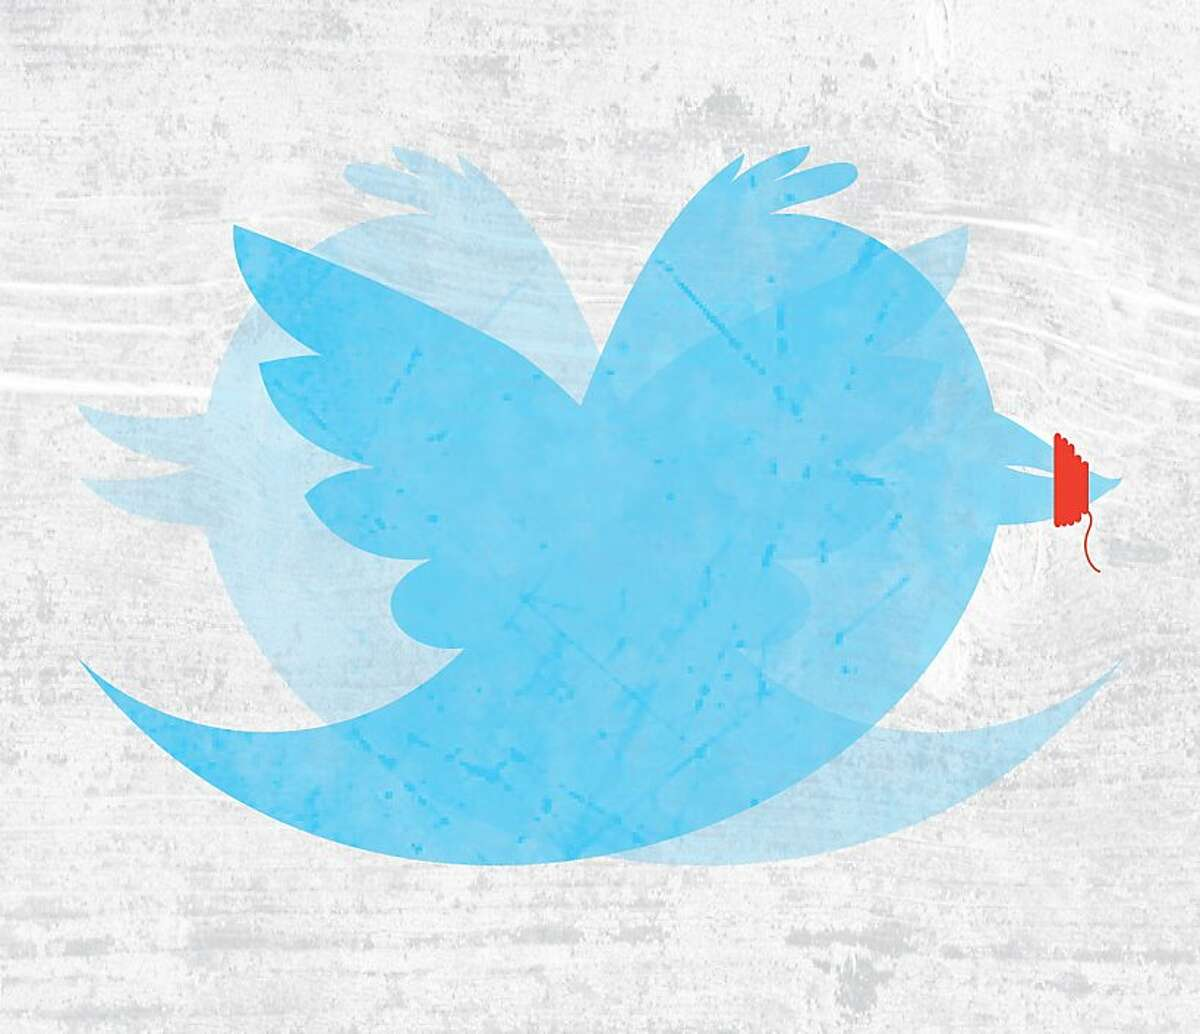 Twitter said Thursday that it now has the ability to reactively block tweets so they won t be seen within a specific country, although the San Francisco company vowed that the tweets must continue to flow. Bloggers and activists in China, Egypt and other countries are outraged.